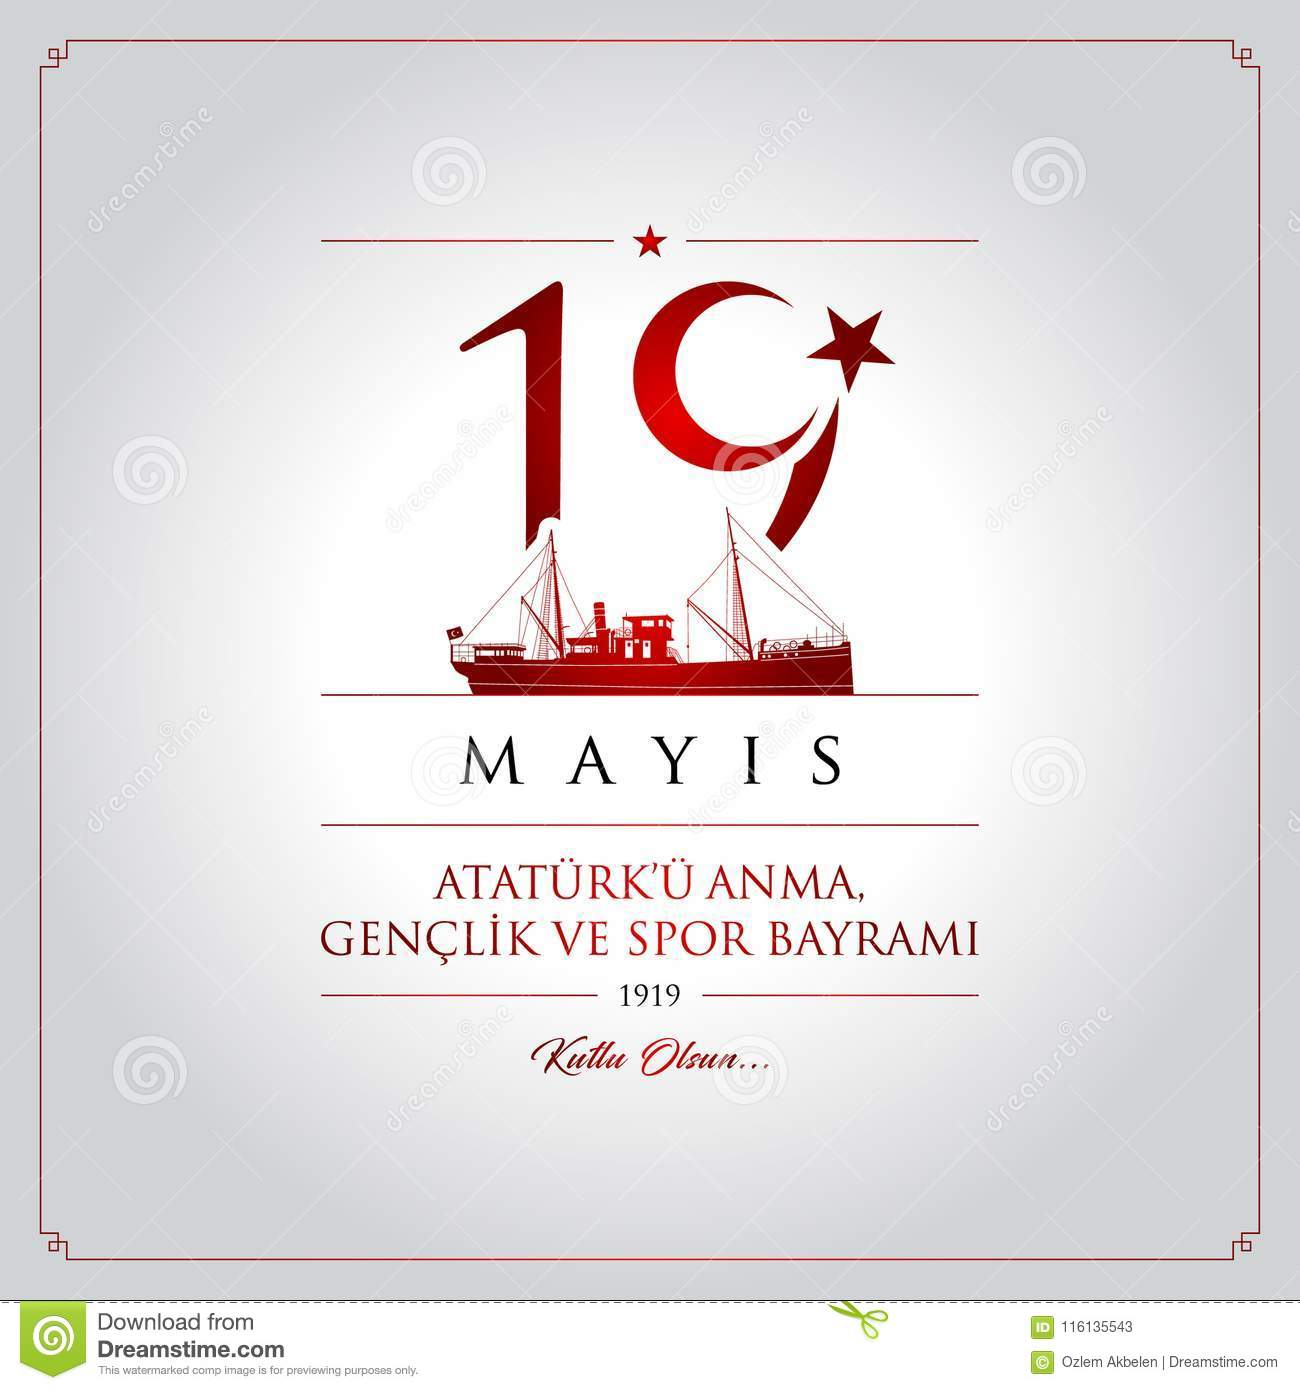 19 May, Commemoration of Ataturk, Youth and Sports Day Turkey celebration card.